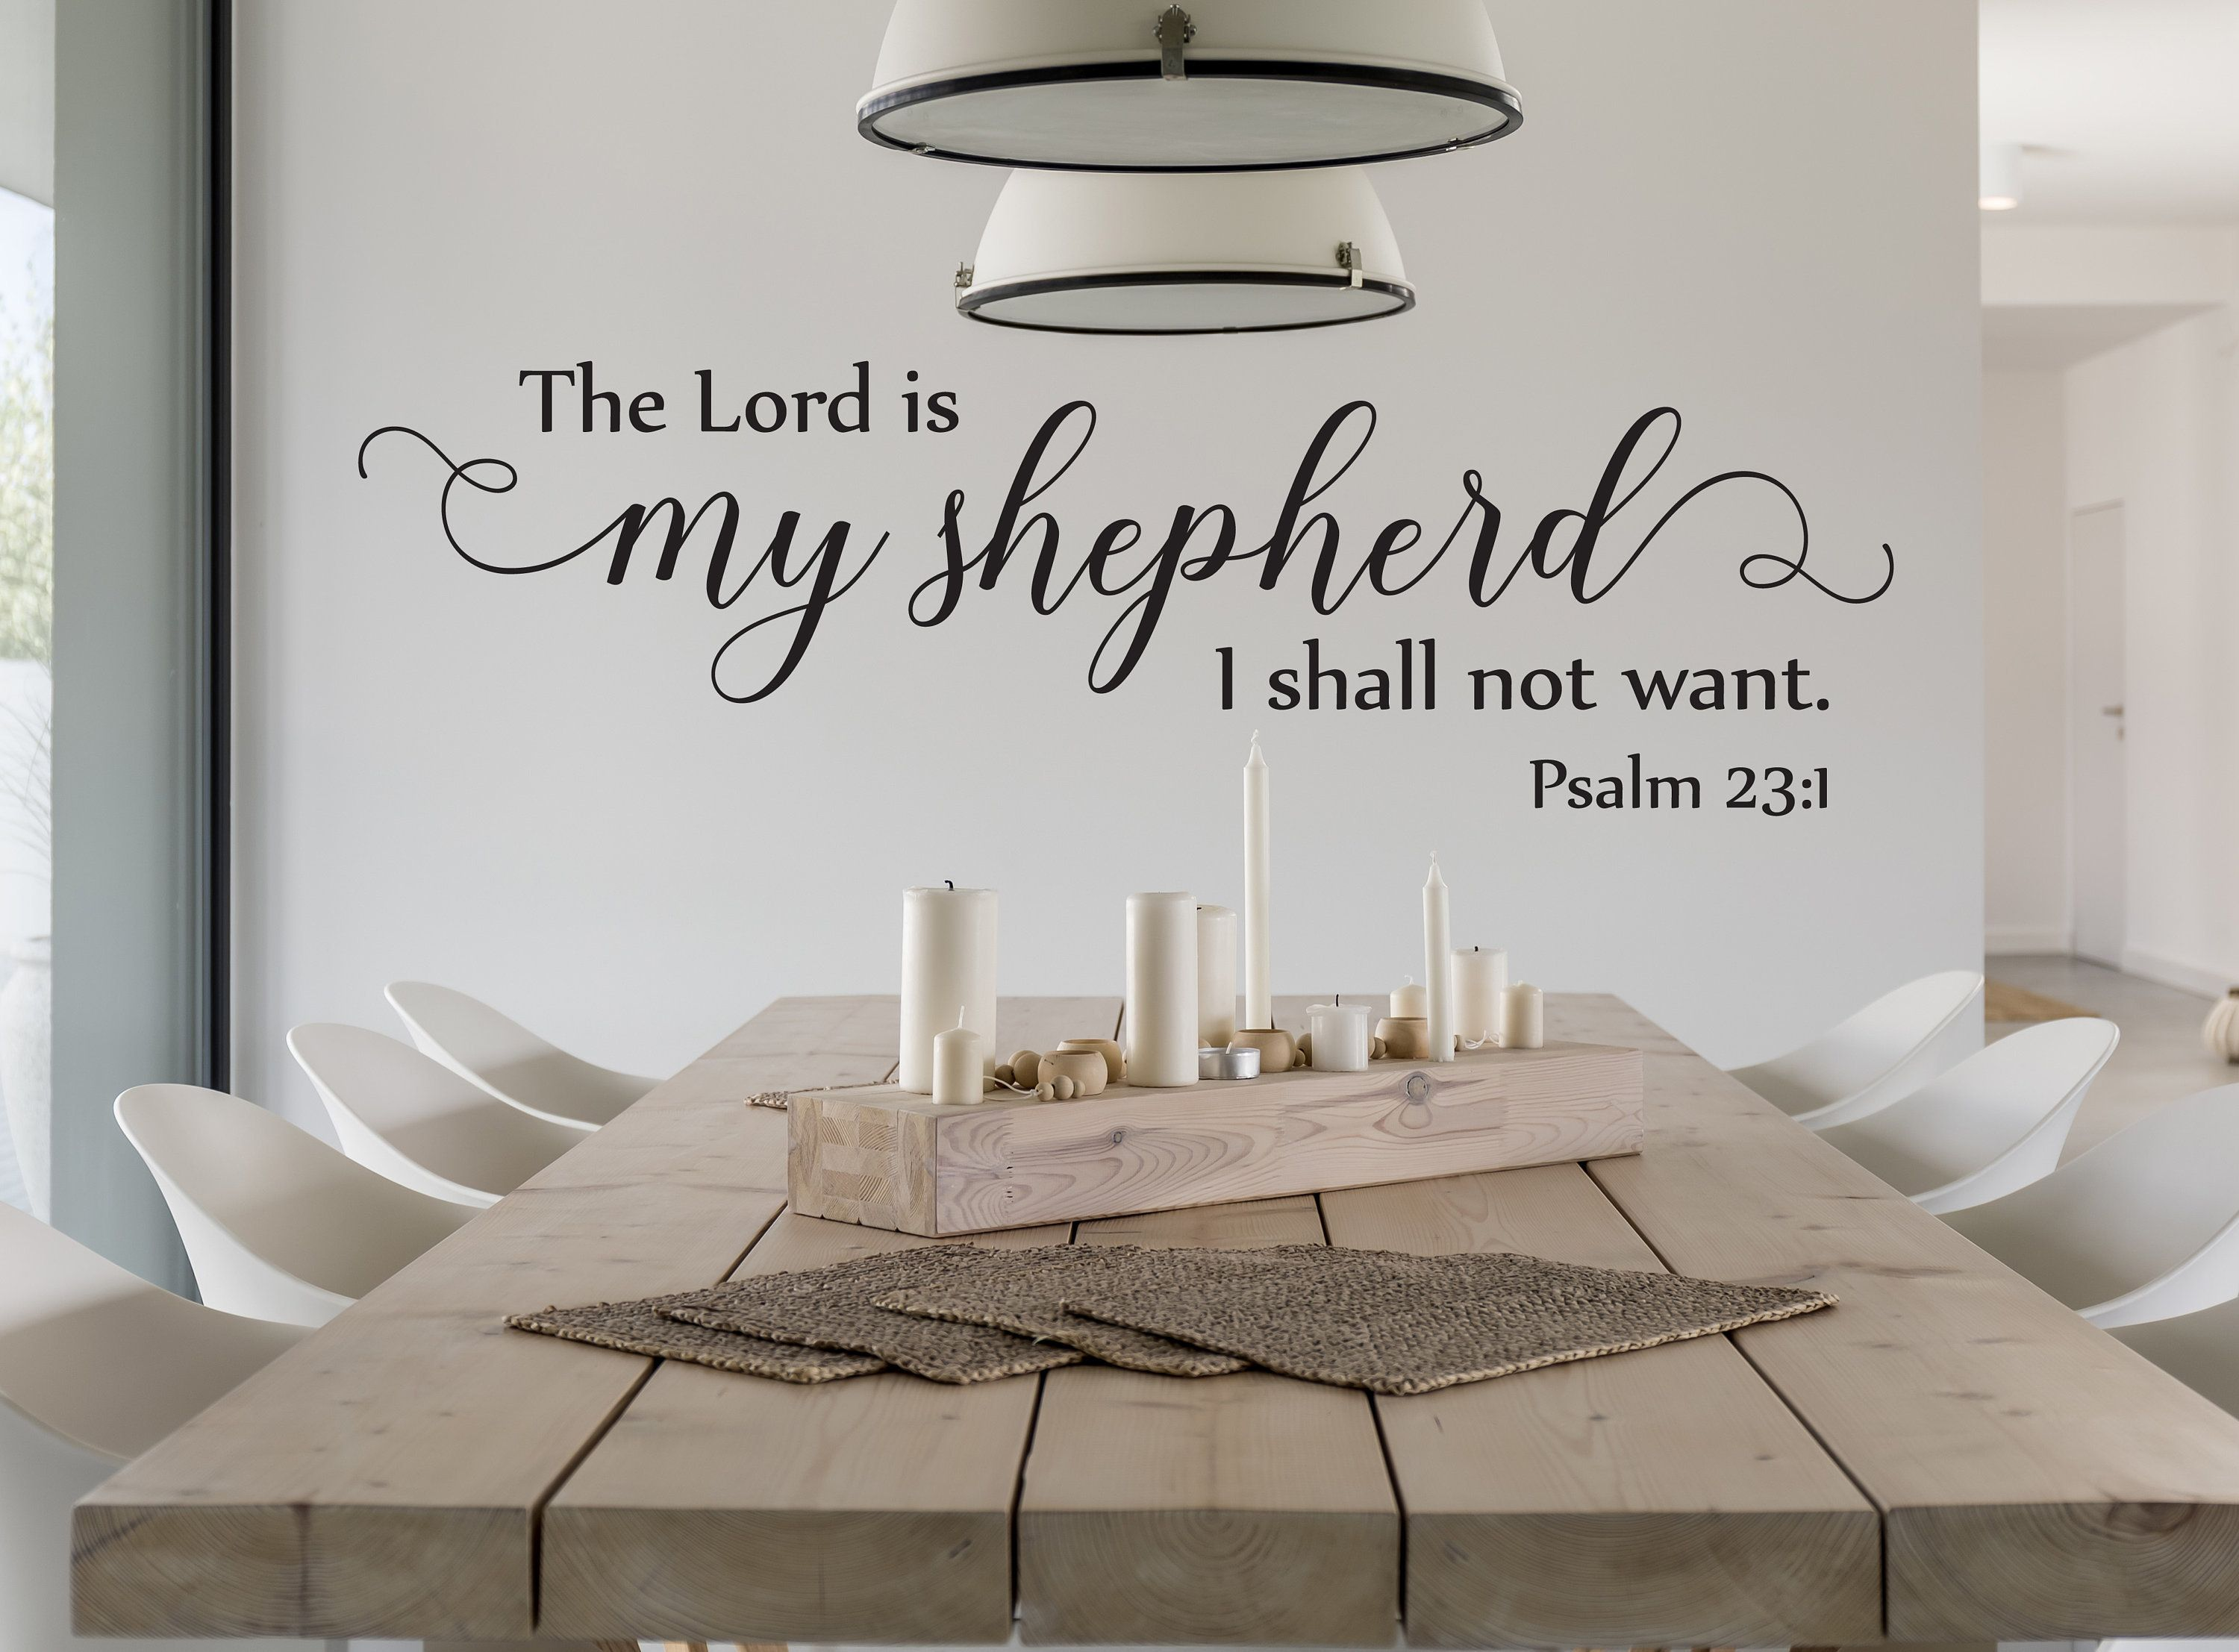 Vinyl Wall Art Decal Psalm 23 1 The Lord Is My Etsy Vinyl Wall Art Vinyl Wall Art Decals Psalms